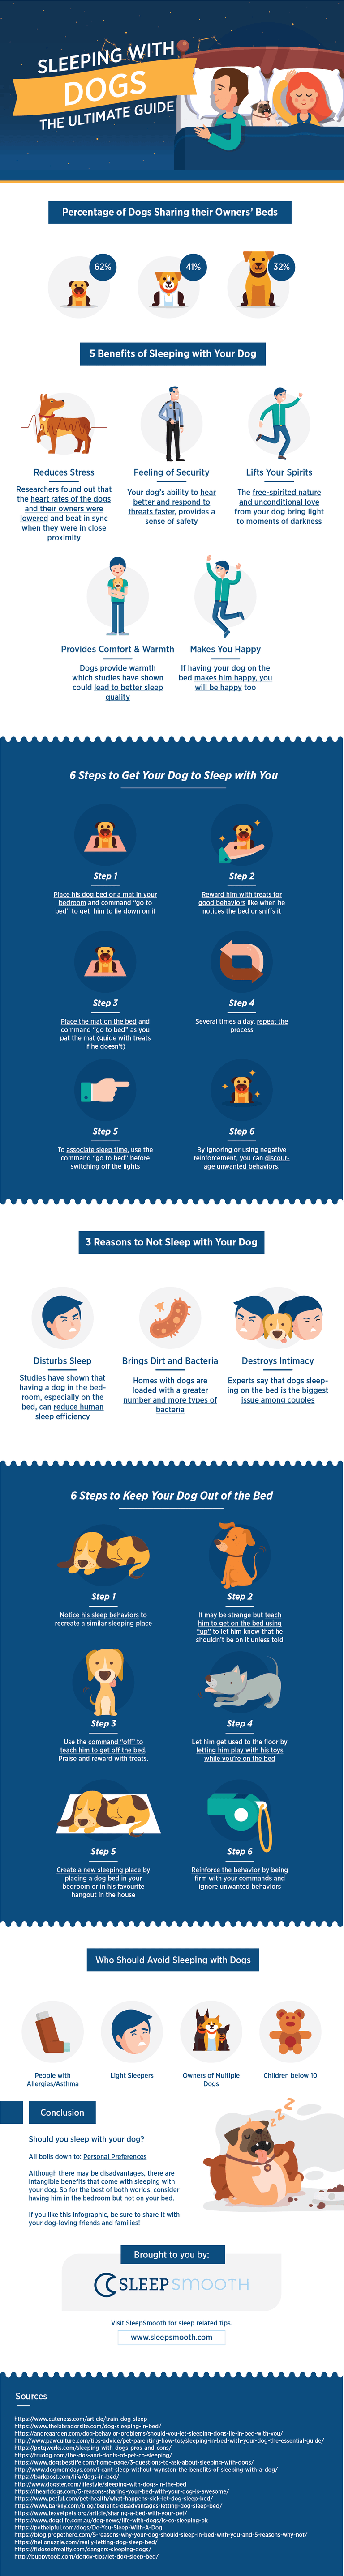 sleeping with dogs infographic